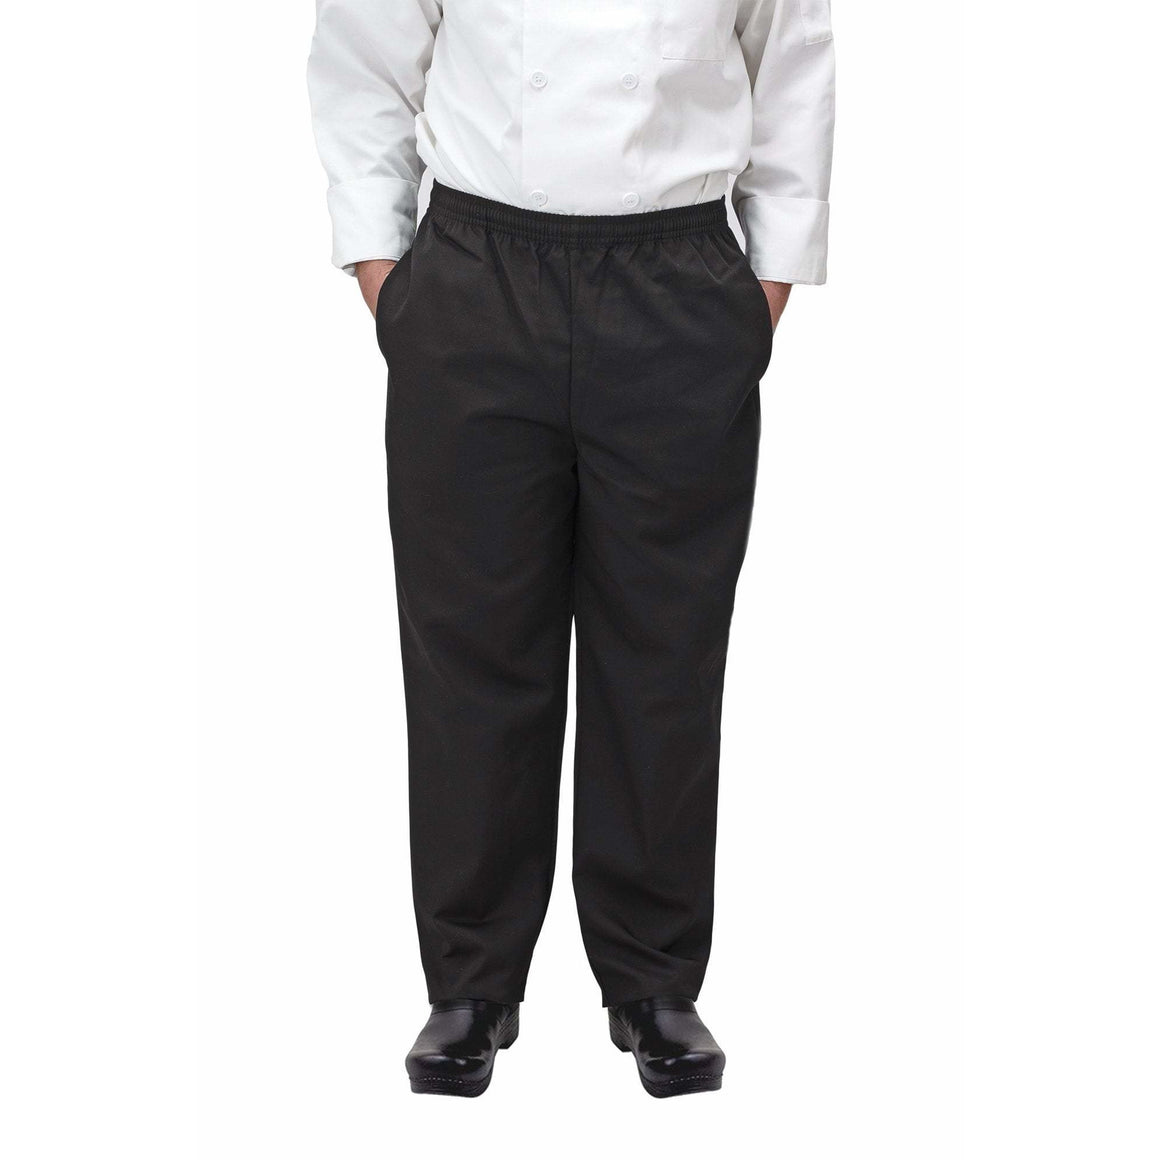 Winco - UNF-2KL - Chef pants, black, L - Apparel - Maltese & Co New and Used  restaurant Equipment